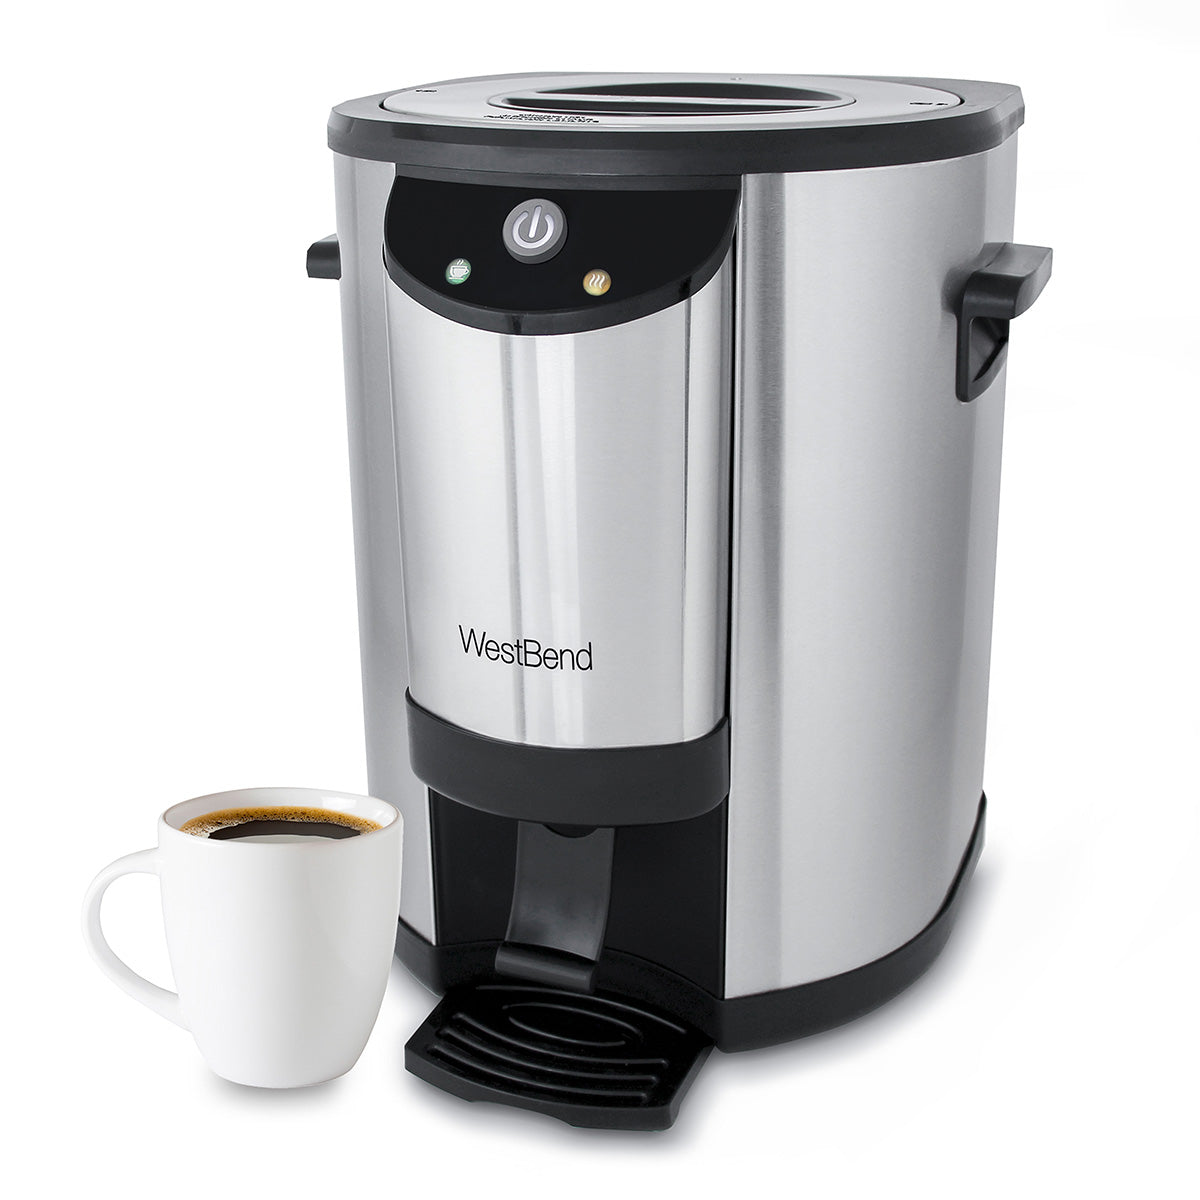 2 WEST BEND 12 TO 30 CUP COFFEE MAKER//POT HANDLES FOR A PARTY PERK OR #58030 URN